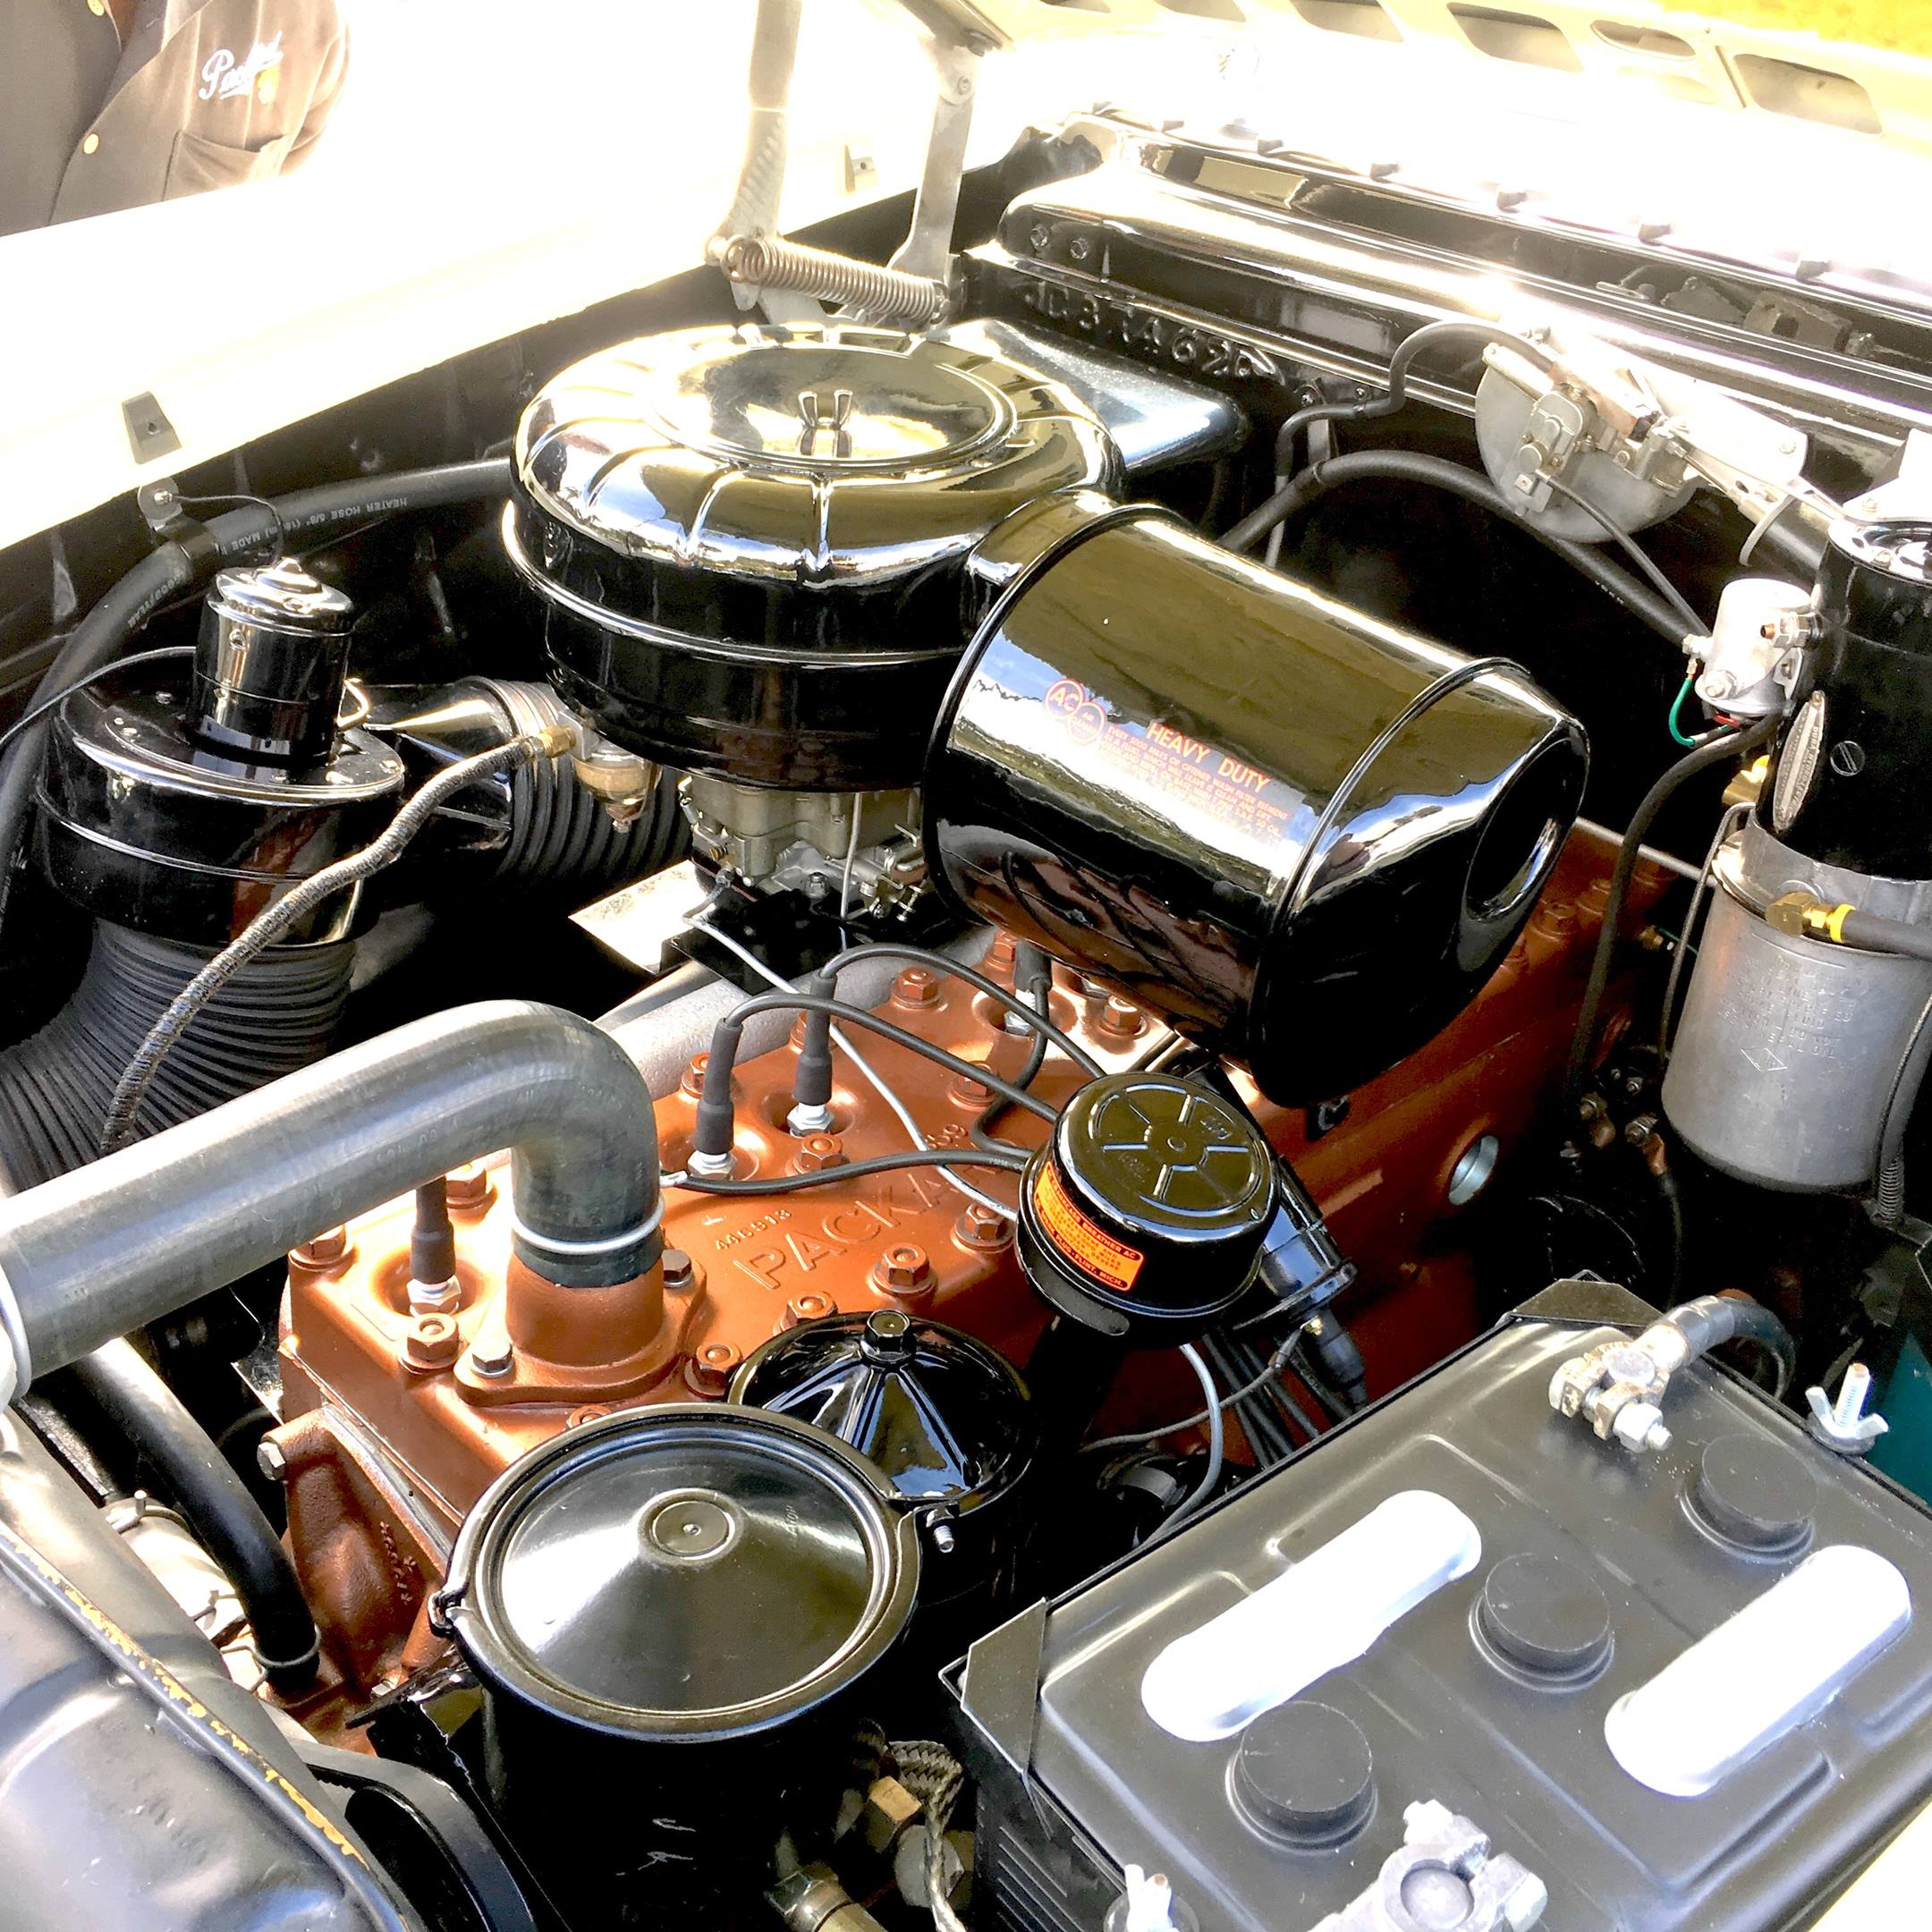 1954 359 cubic inch Packard Thunderbolt engine